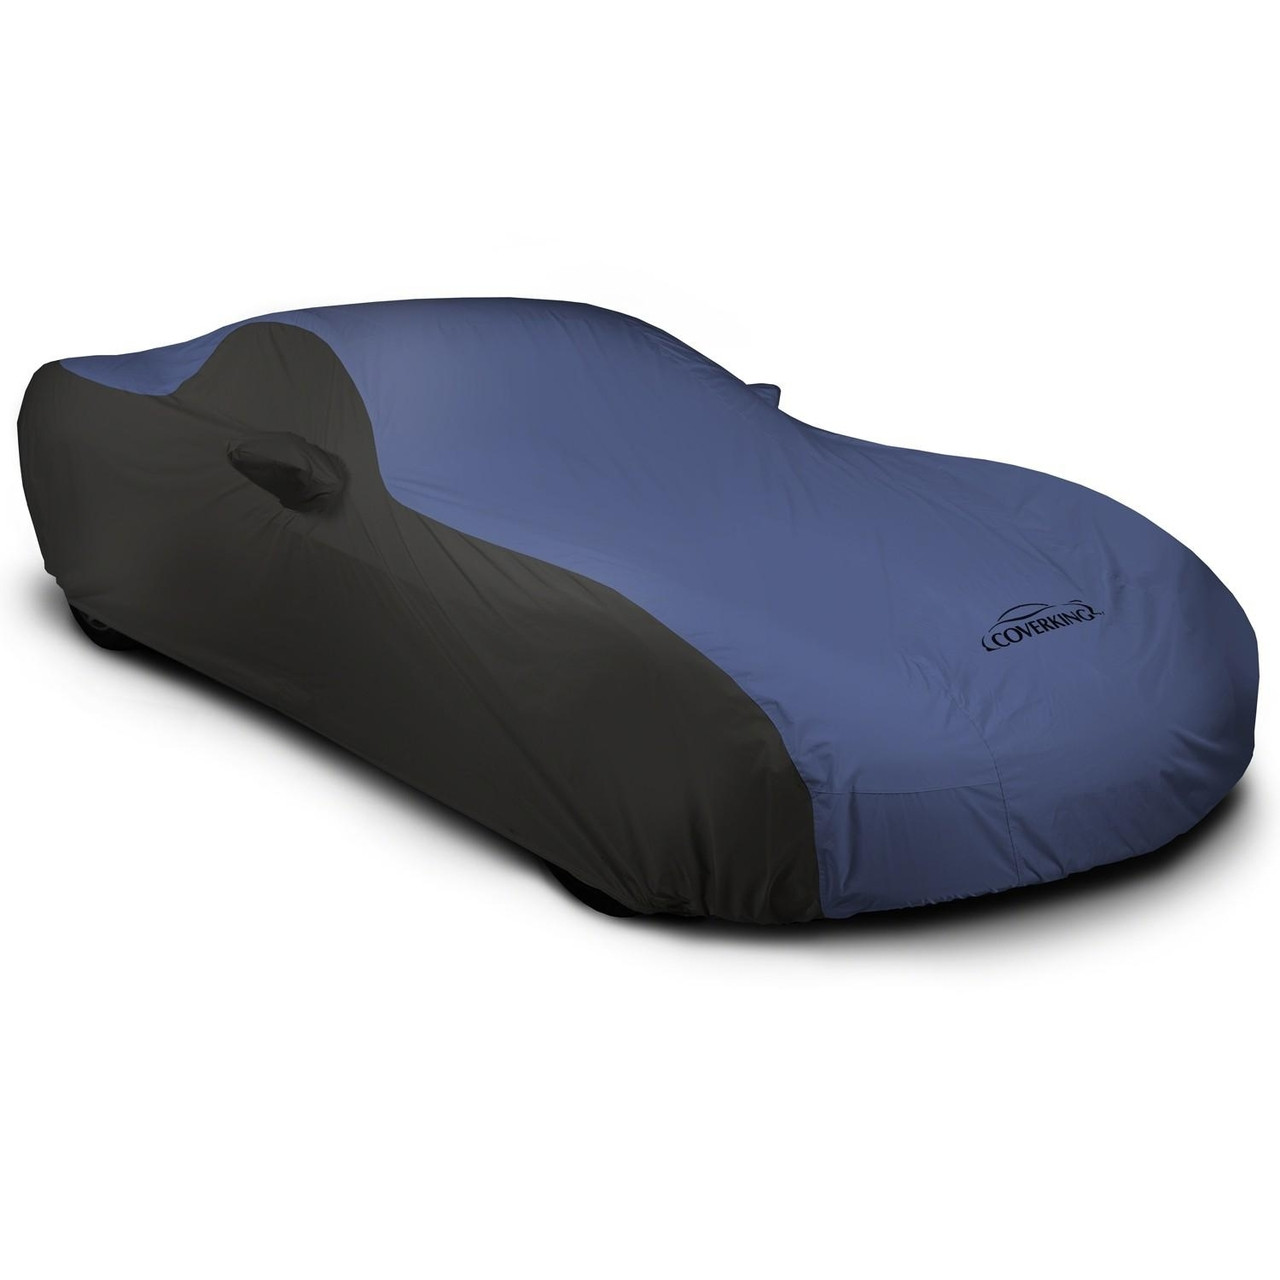 Corvette Outdoor Car Cover black/blue